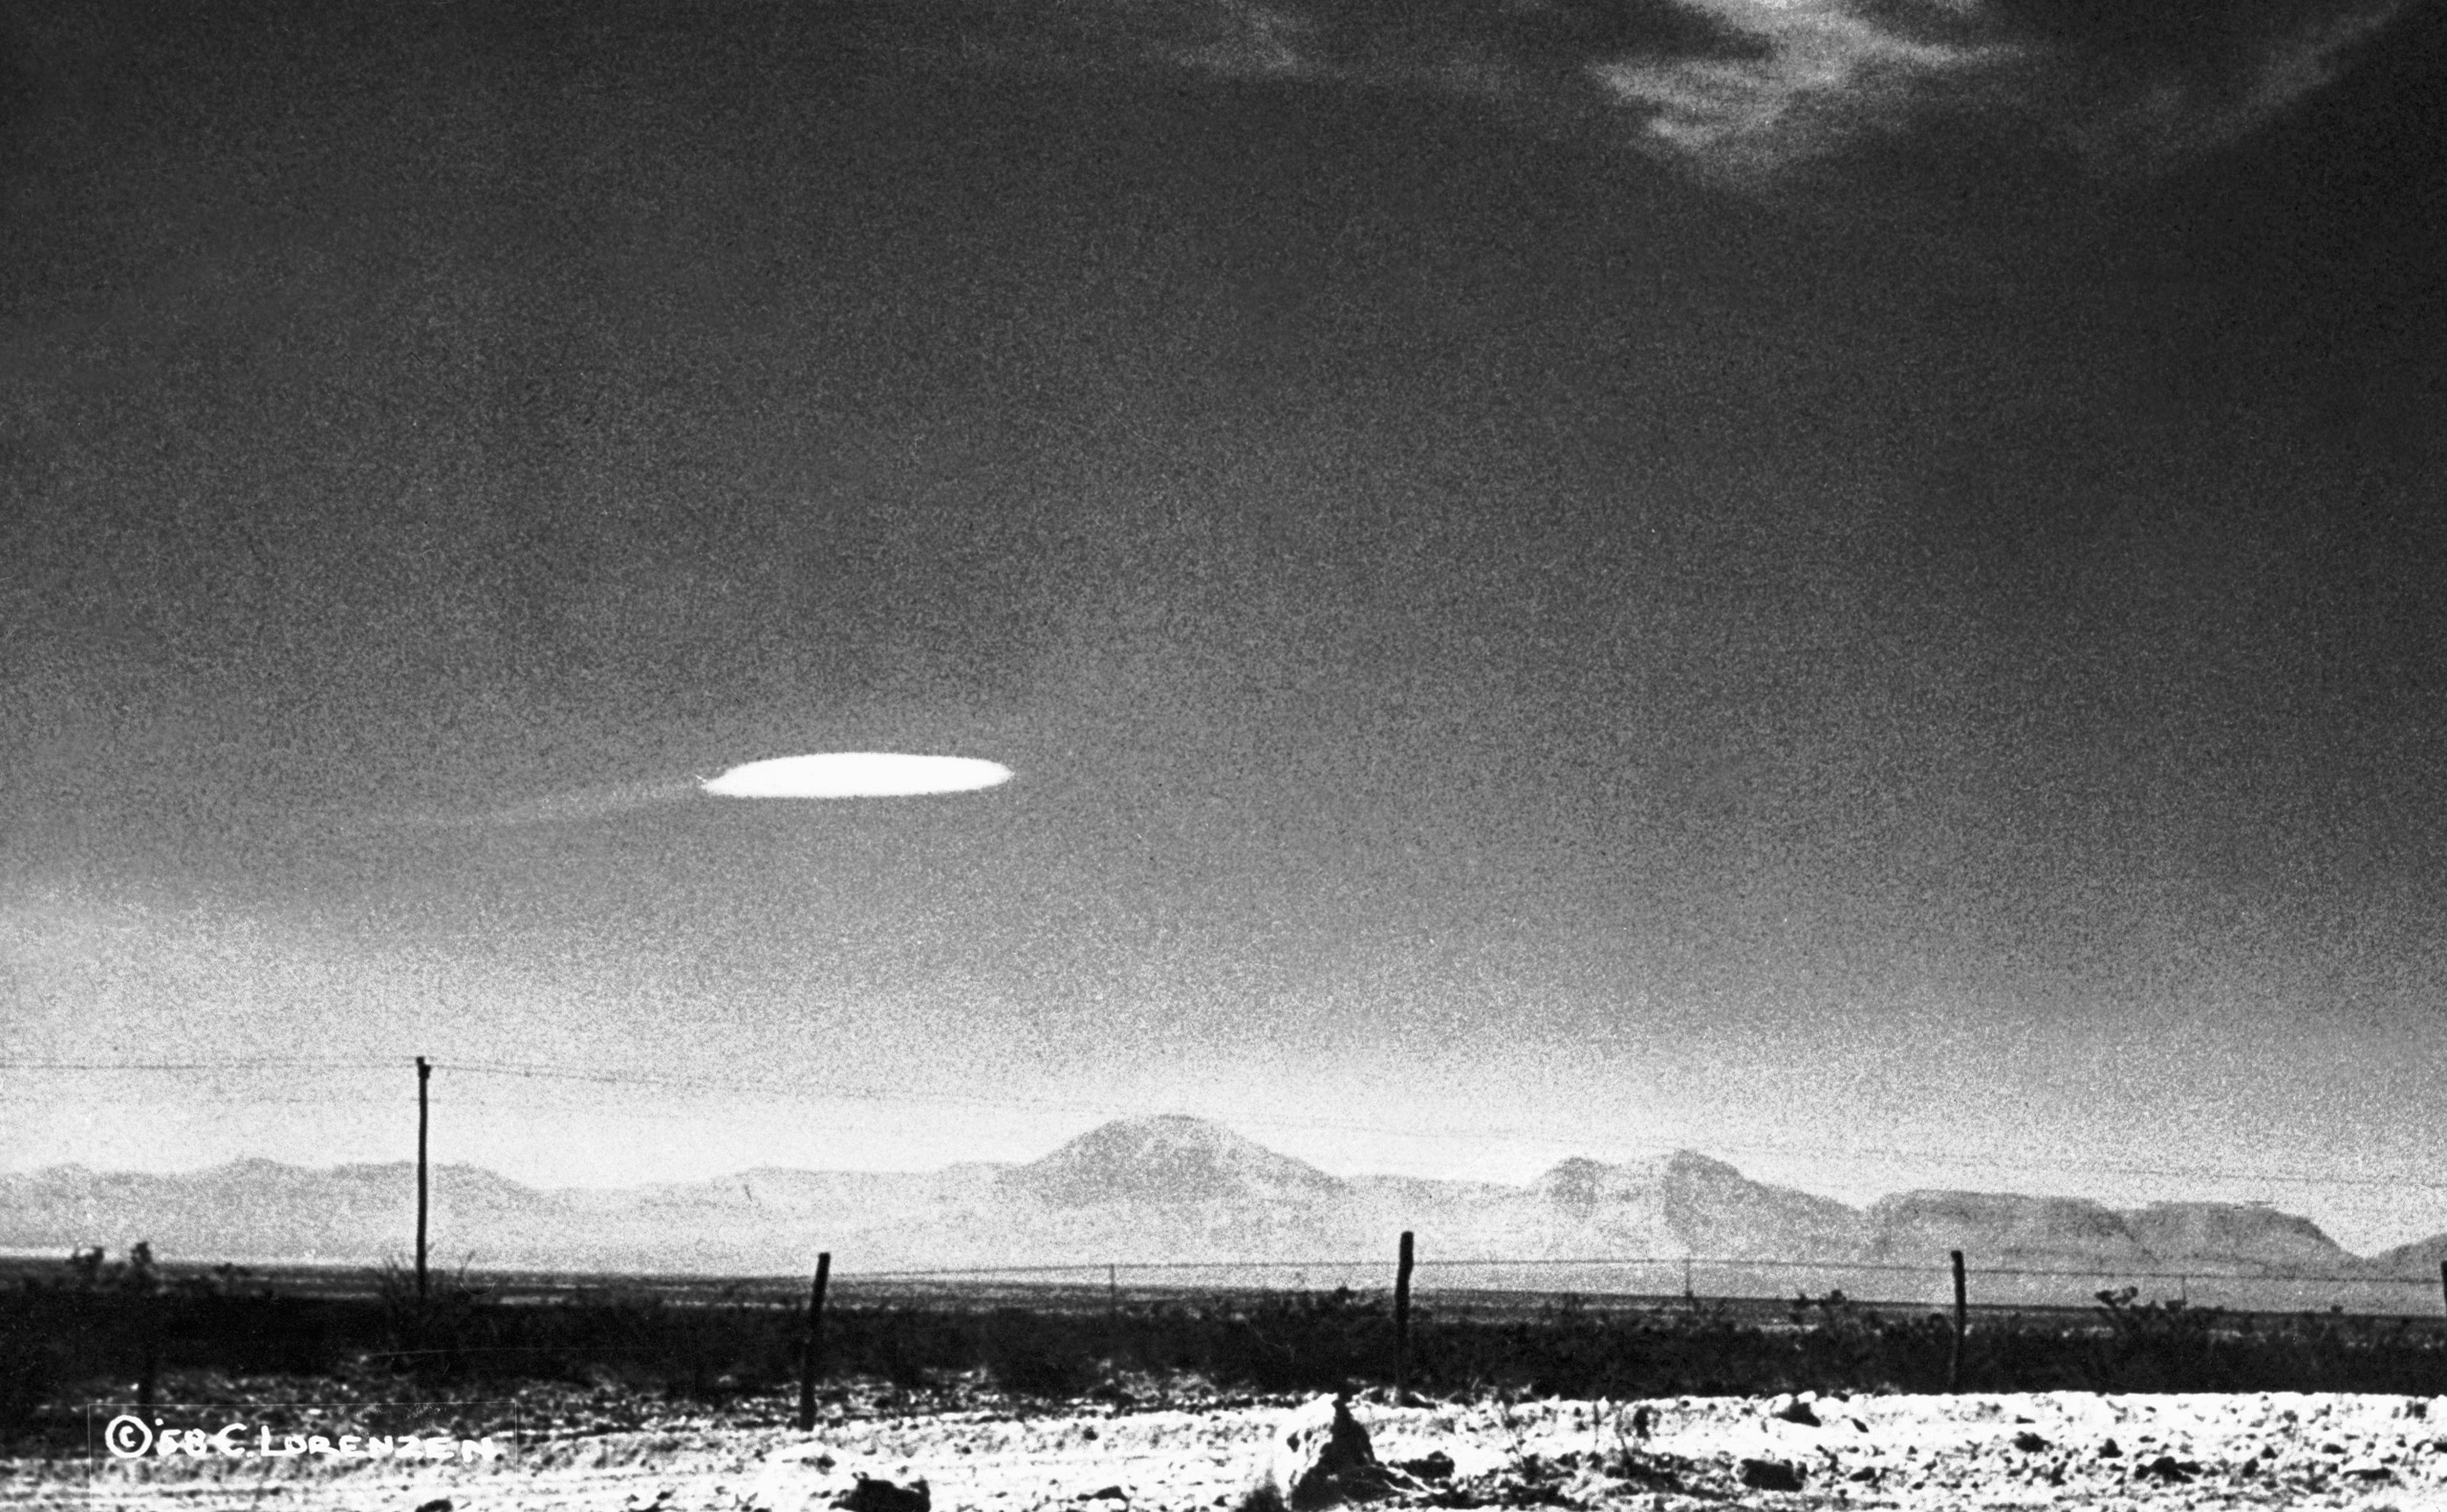 16 Oct 1957, Alamogordo, New Mexico, USA --- A UFO variety was photographed when it hovered for fifteen minutes near Holloman Air Development Center in New Mexico. The object was photographed by a government employee and was released by the Aerial Phenomena Research Organization after careful study. There is no conventional explanation for the object. --- Image by © Bettmann/CORBIS